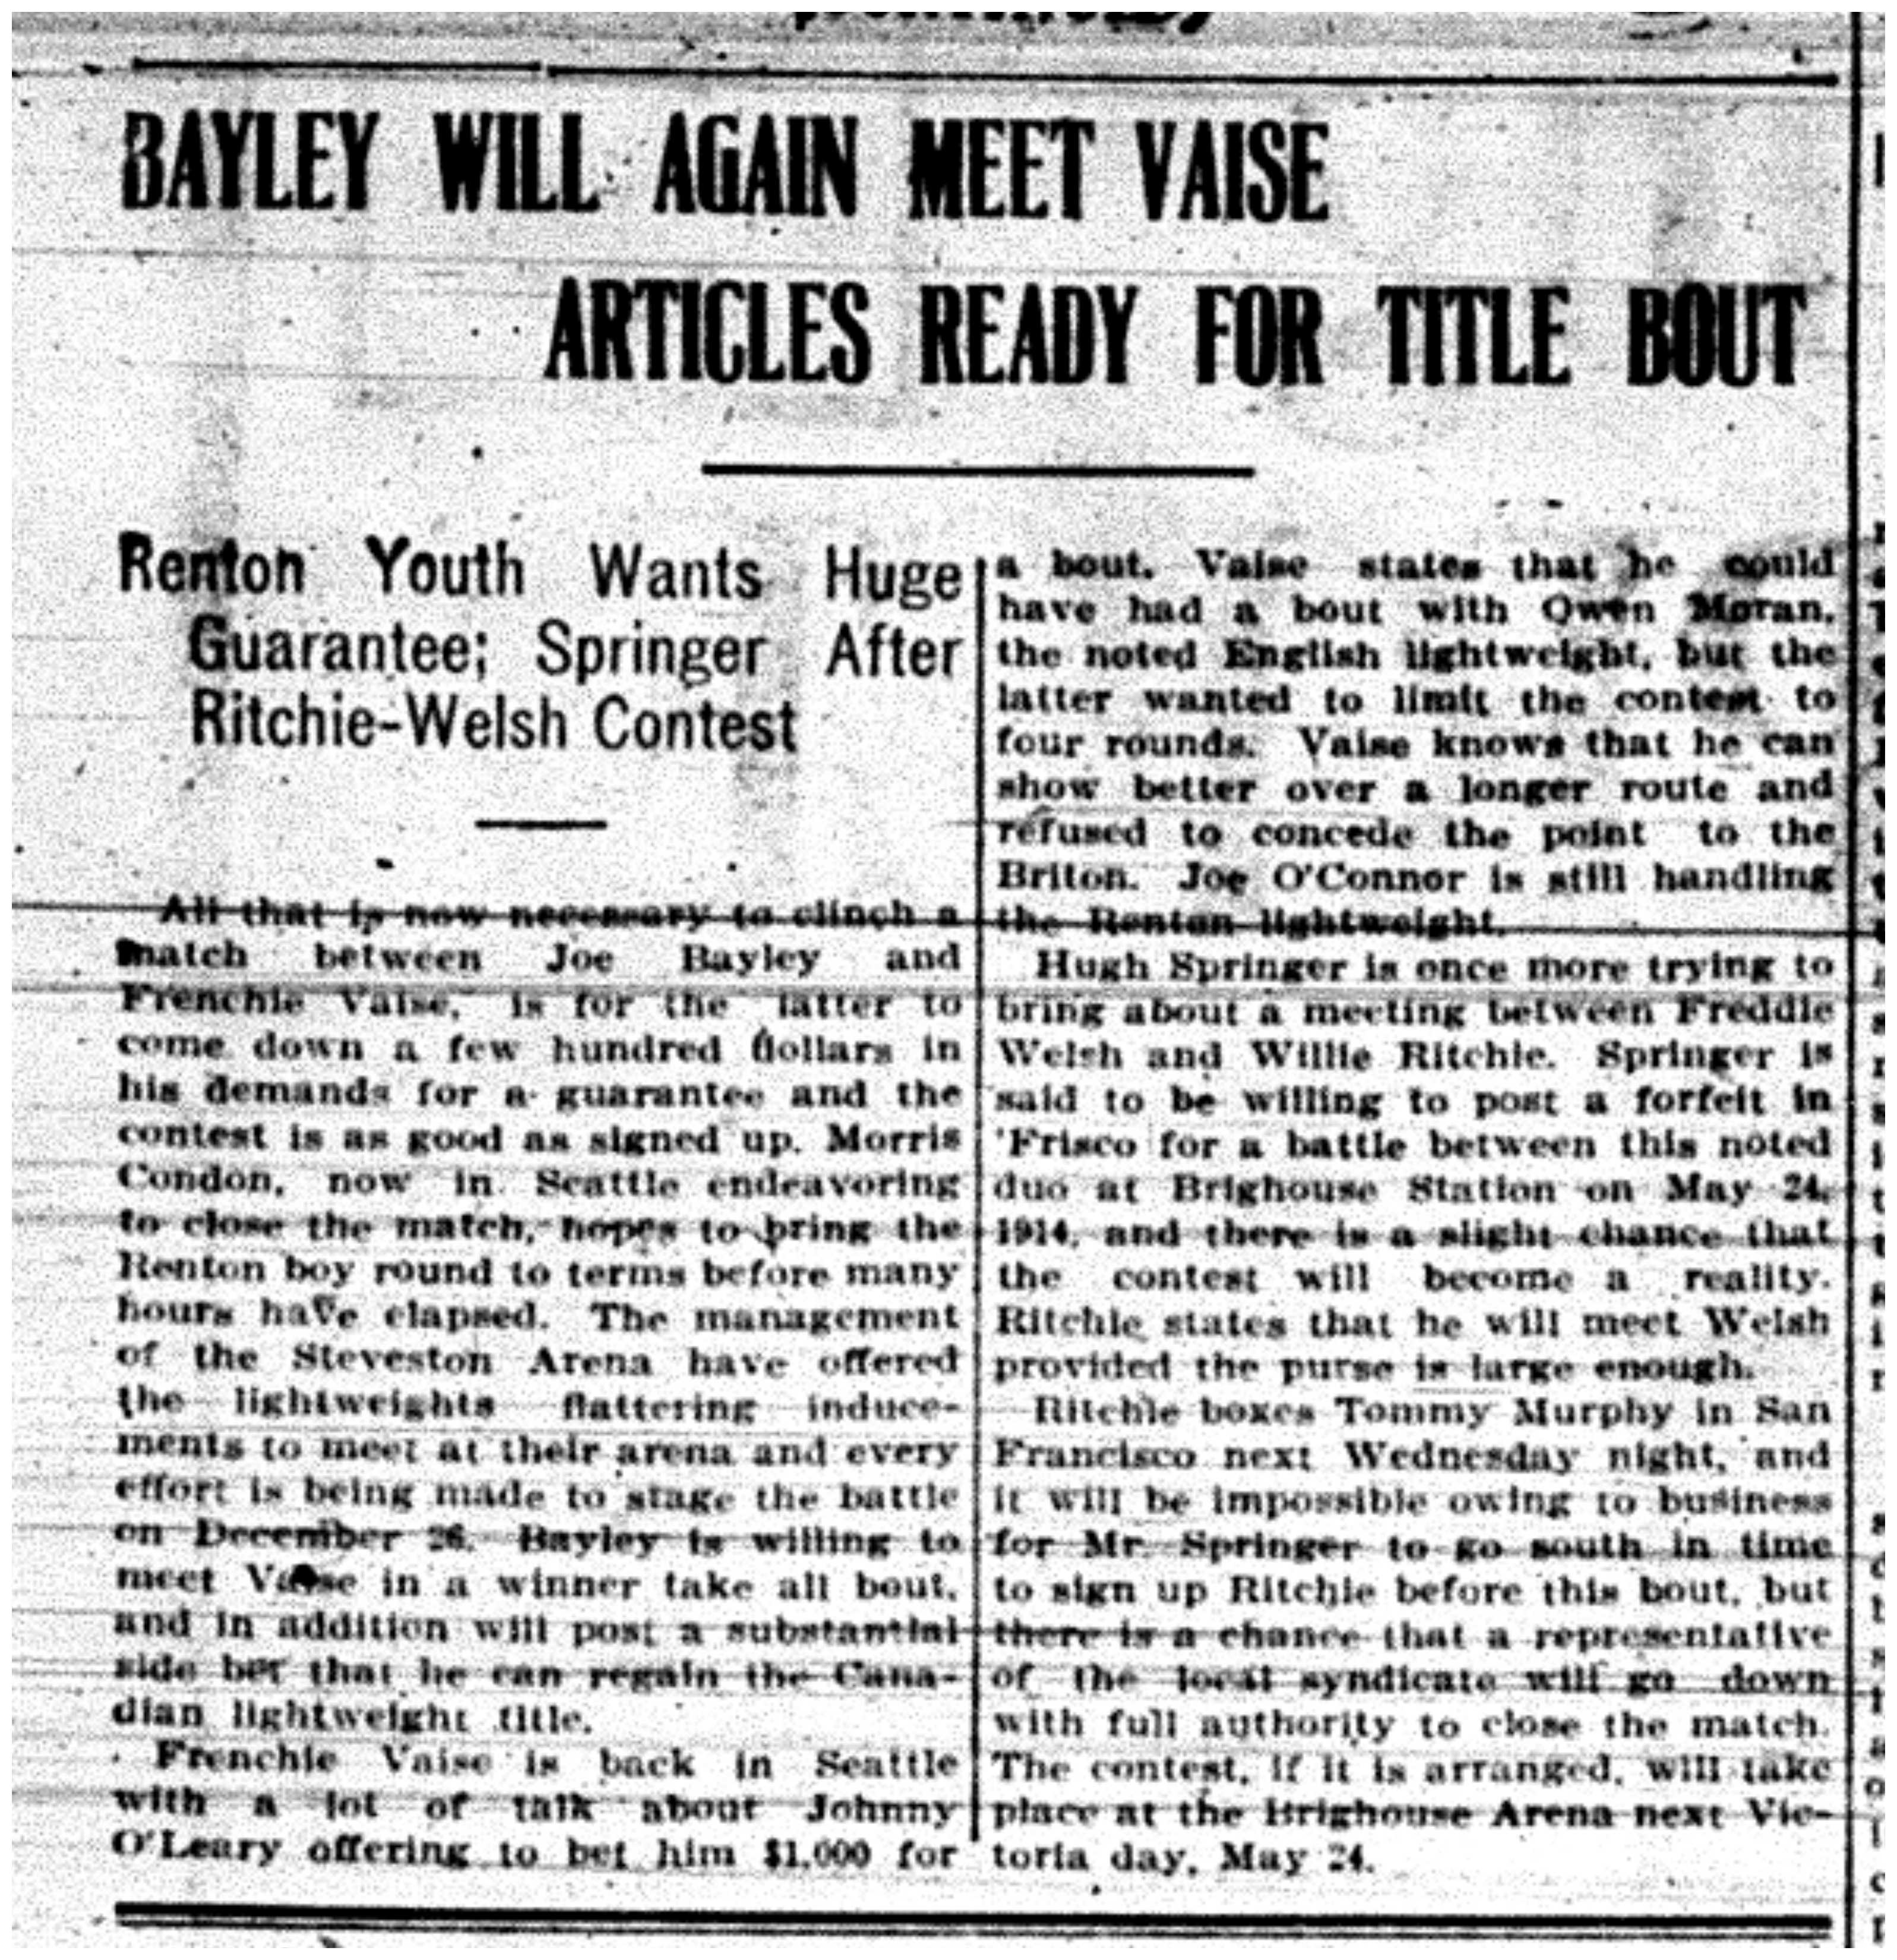 """""""Bayley Will Again Meet Vaise - Articles Ready for Title Bout"""""""